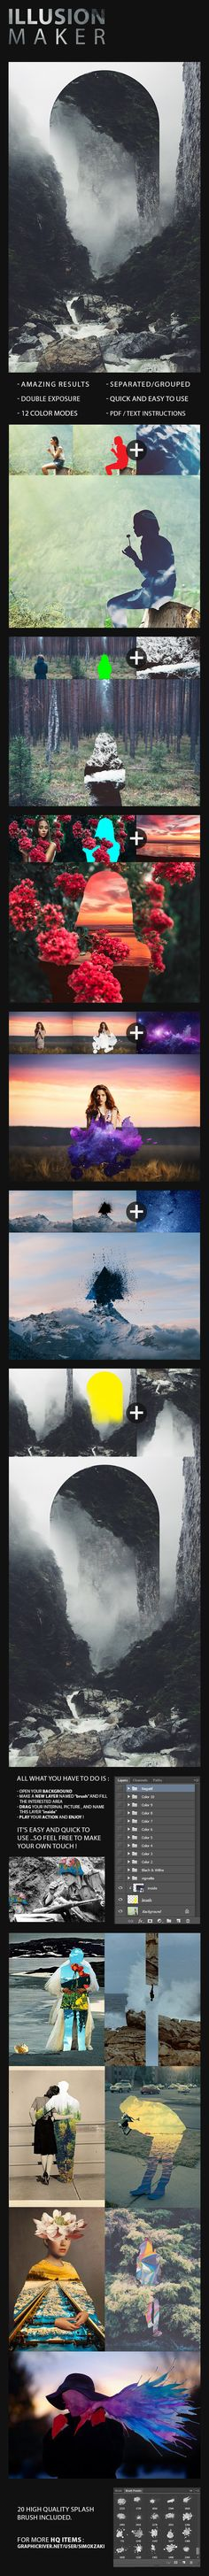 Illusion Photoshop Action #photoeffect Download: http://graphicriver.net/item/illusion-action/12146197?ref=ksioks